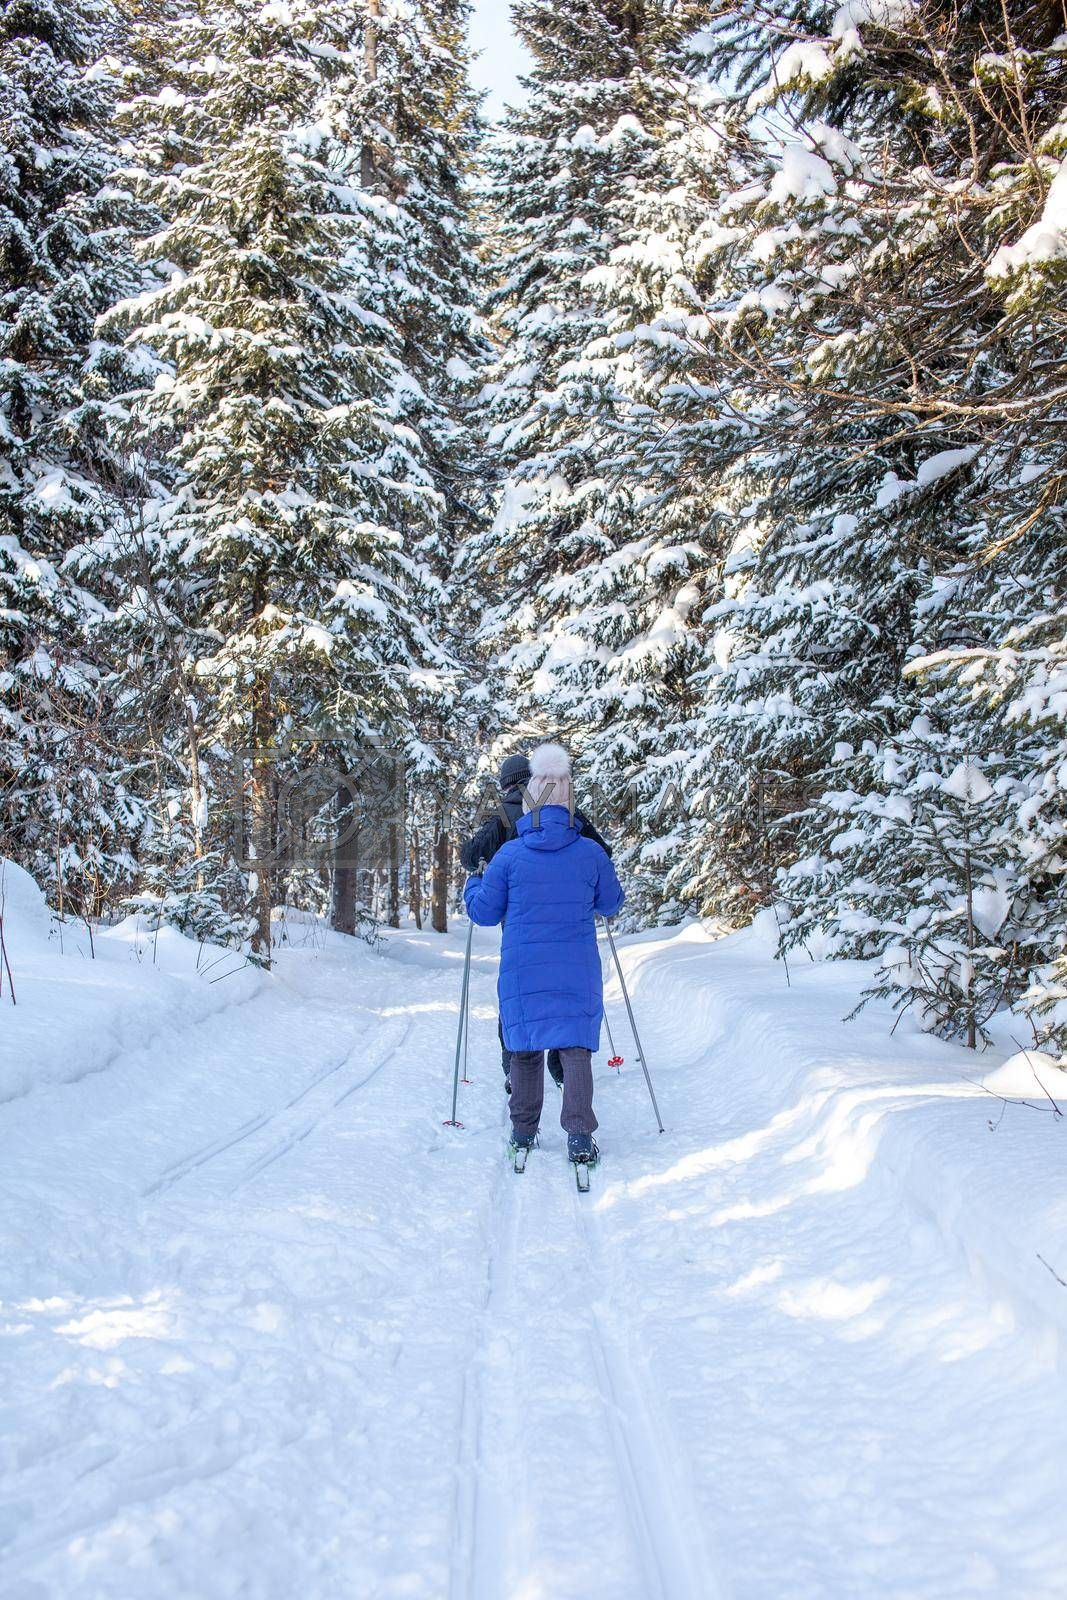 A girl in a blue jacket goes skiing in a snowy forest in winter. The view from the back. Snow background with skis between the trees. Ski trail